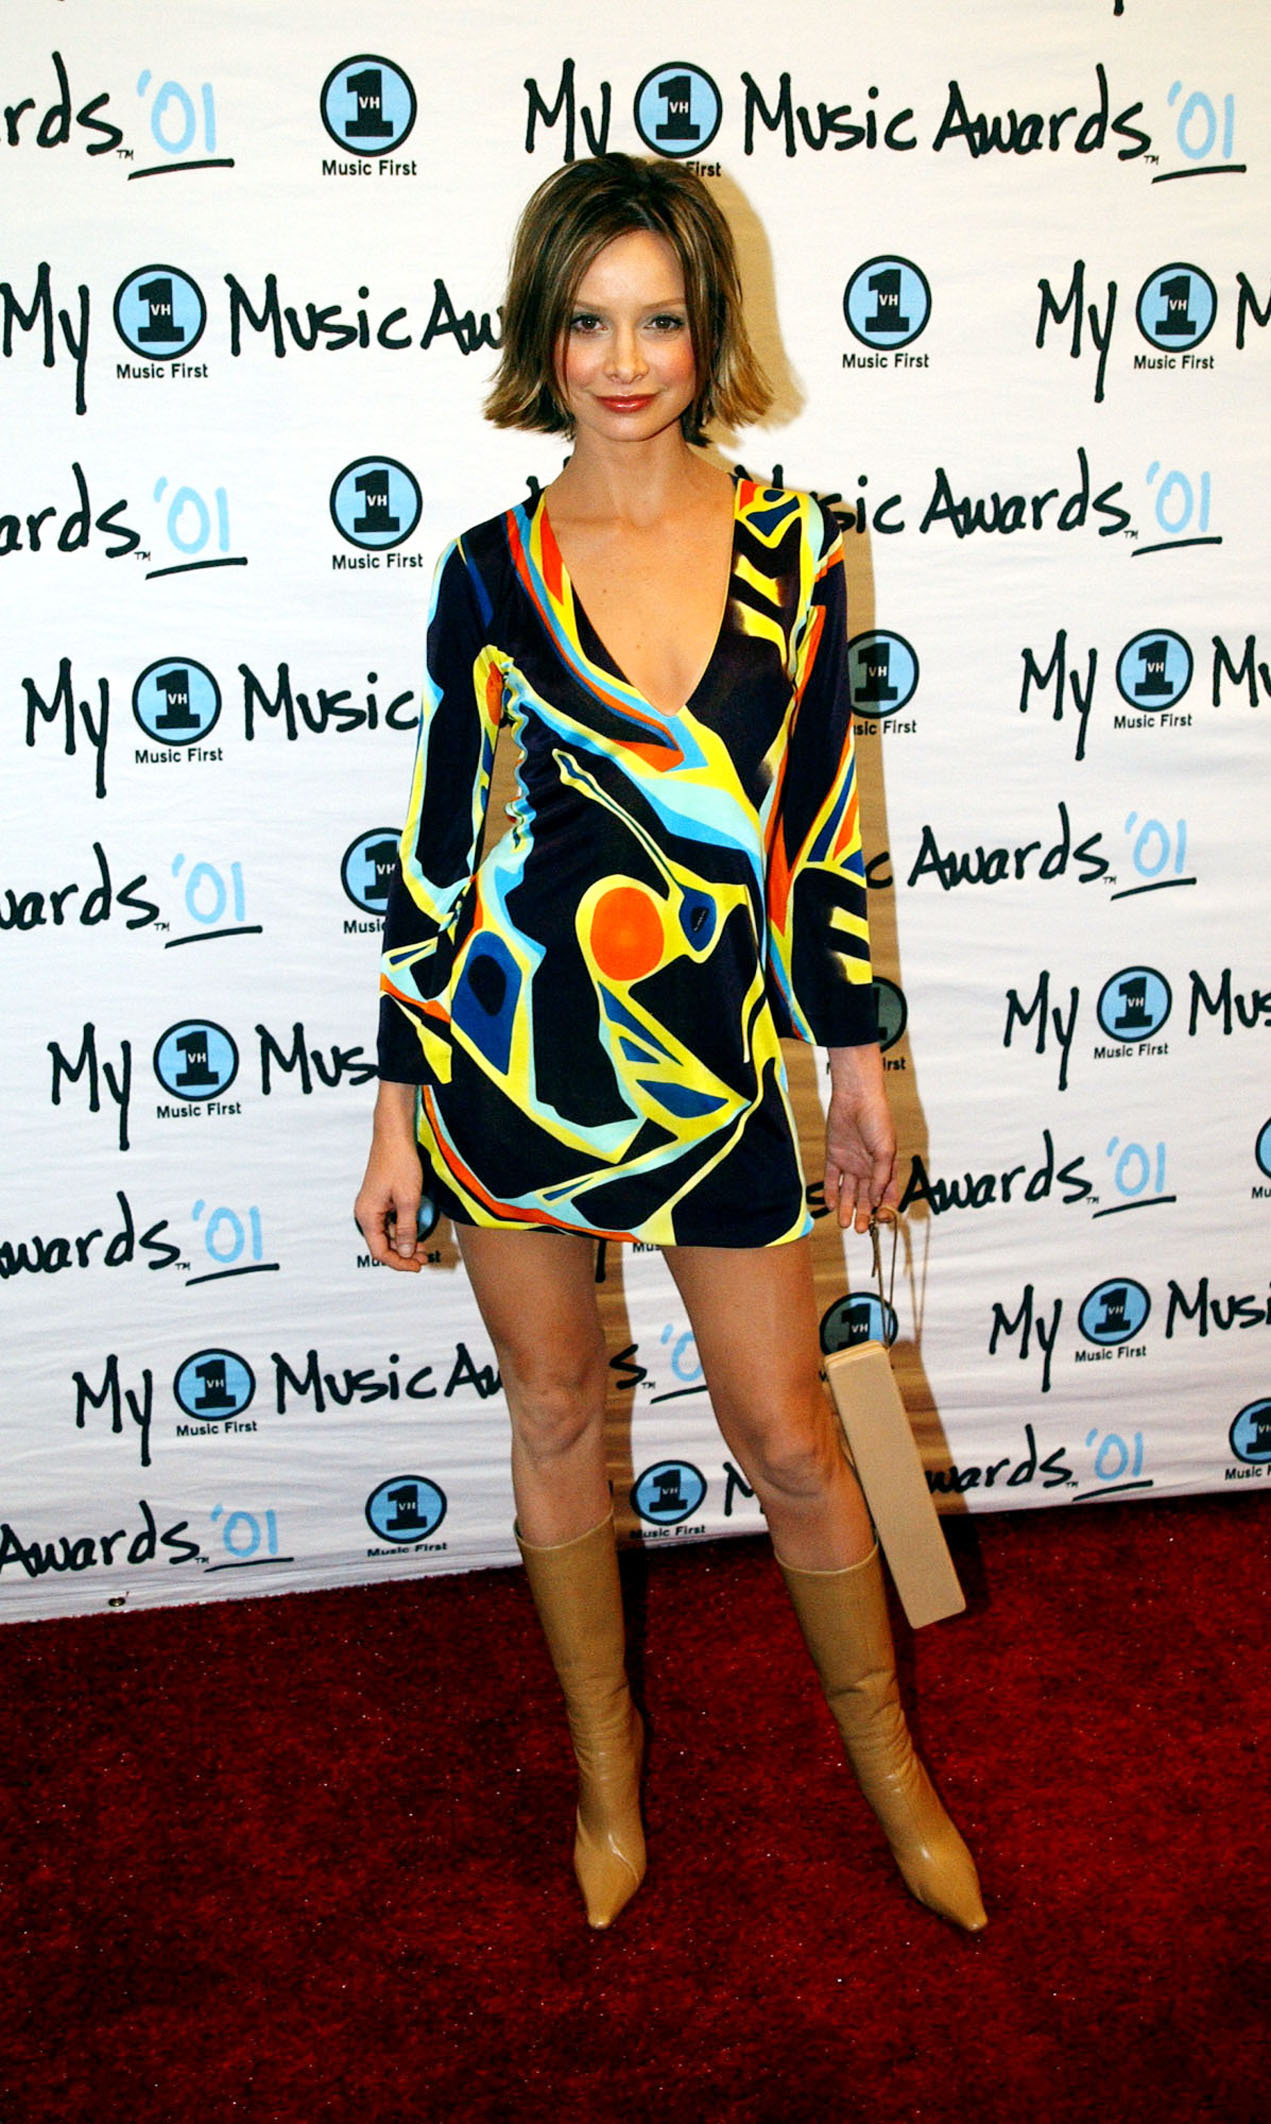 Ally McBeal actress Calista Flockhart at the VH1 Music Awards